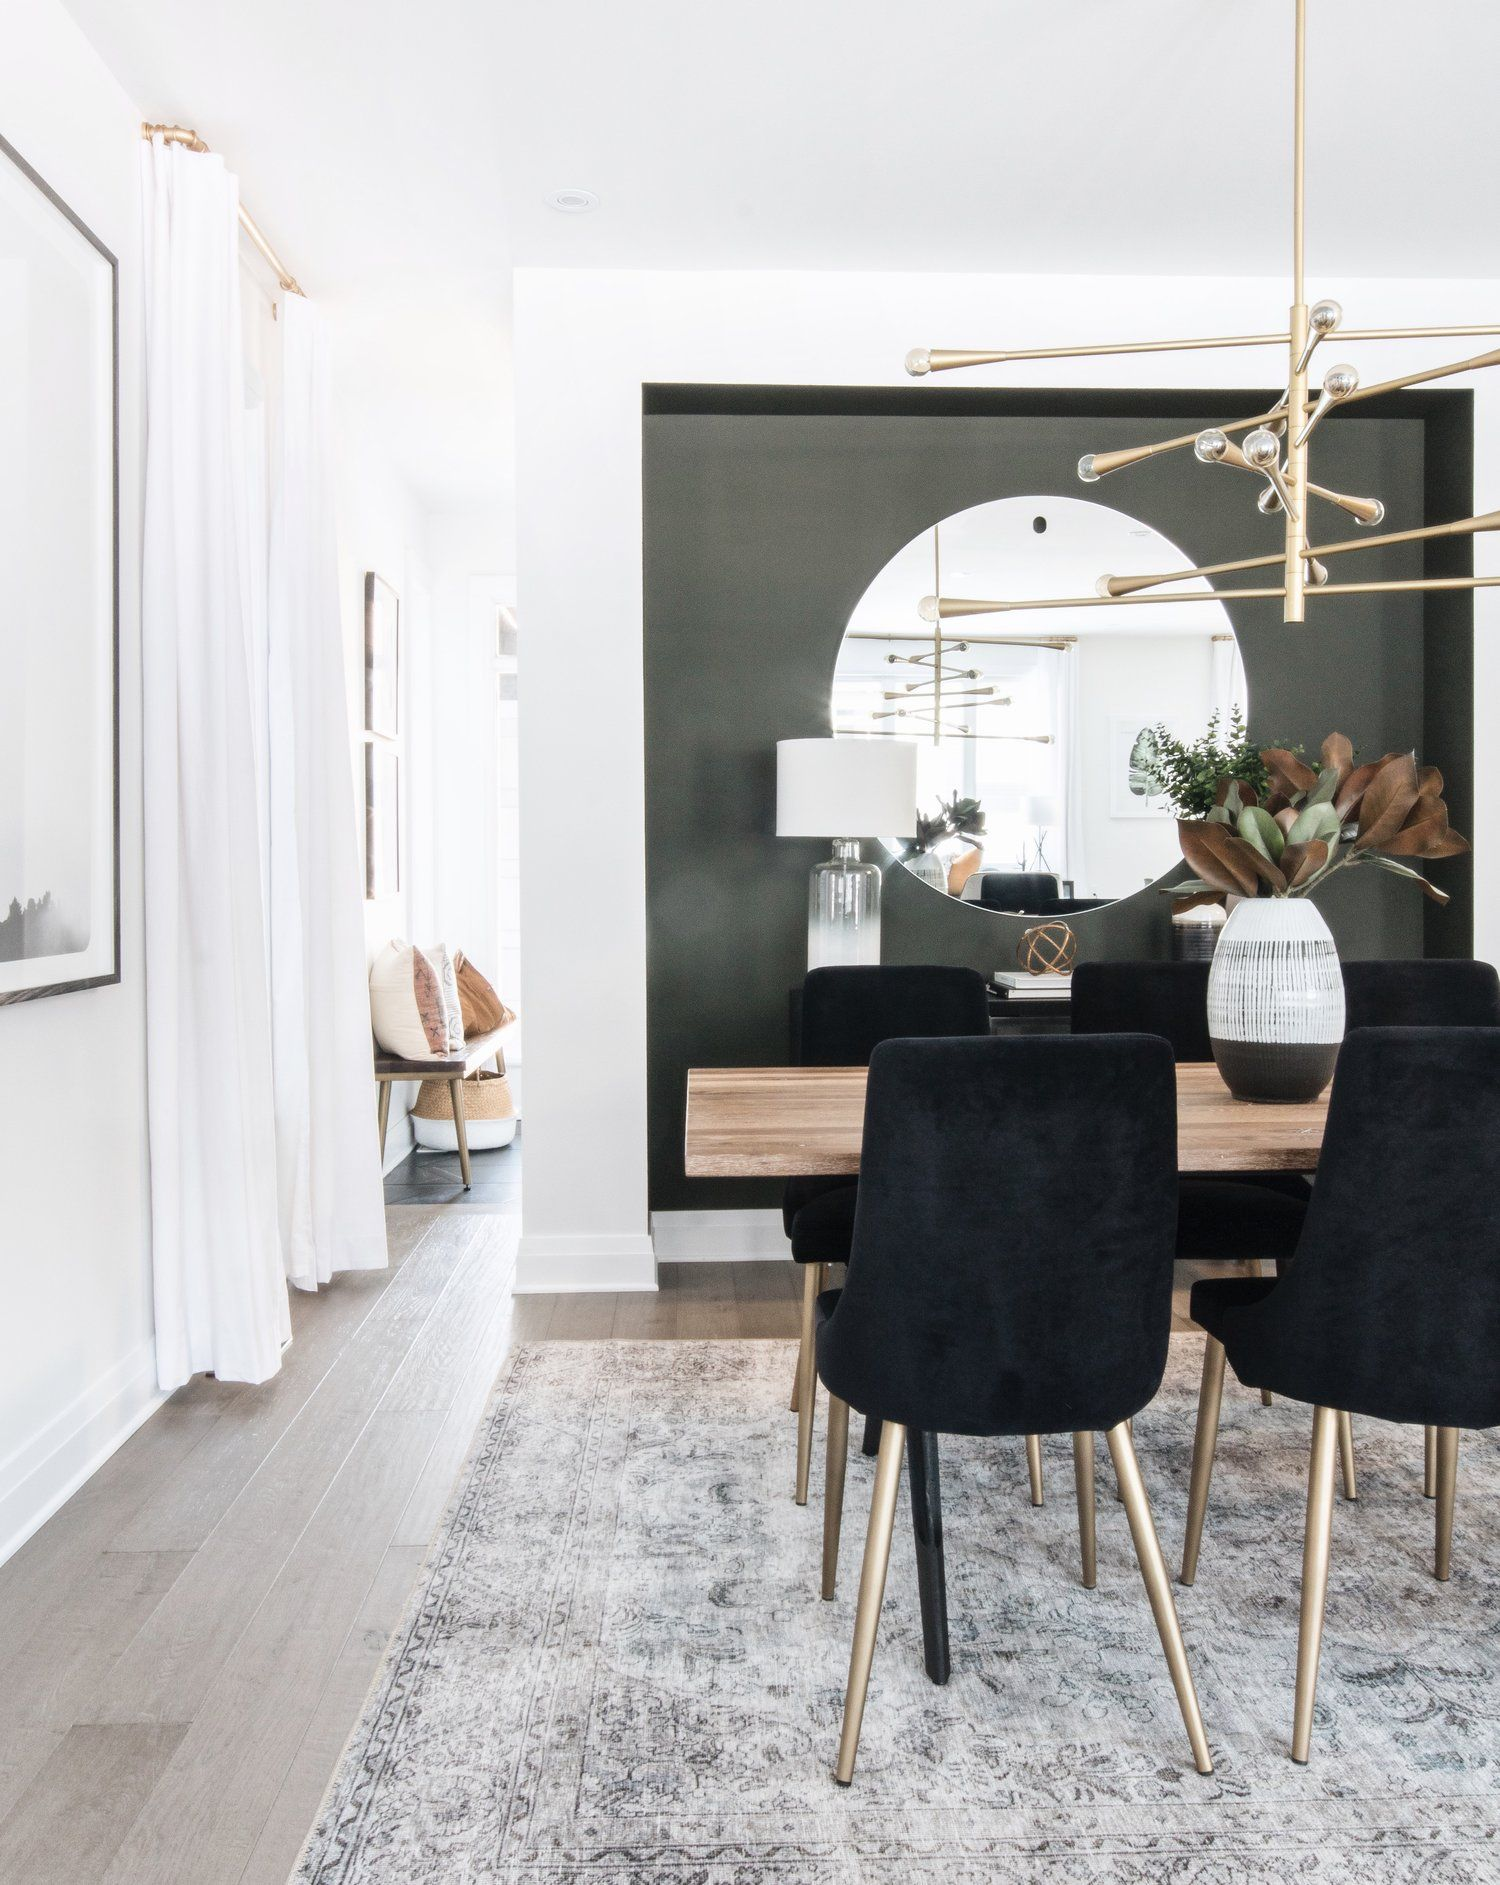 Statement Accent Wall In The Formal Dining Space By Ottawa Based Interior Design Firm Leclair Decor How To Make Inspiration Salle A Manger Deco Salle A Manger